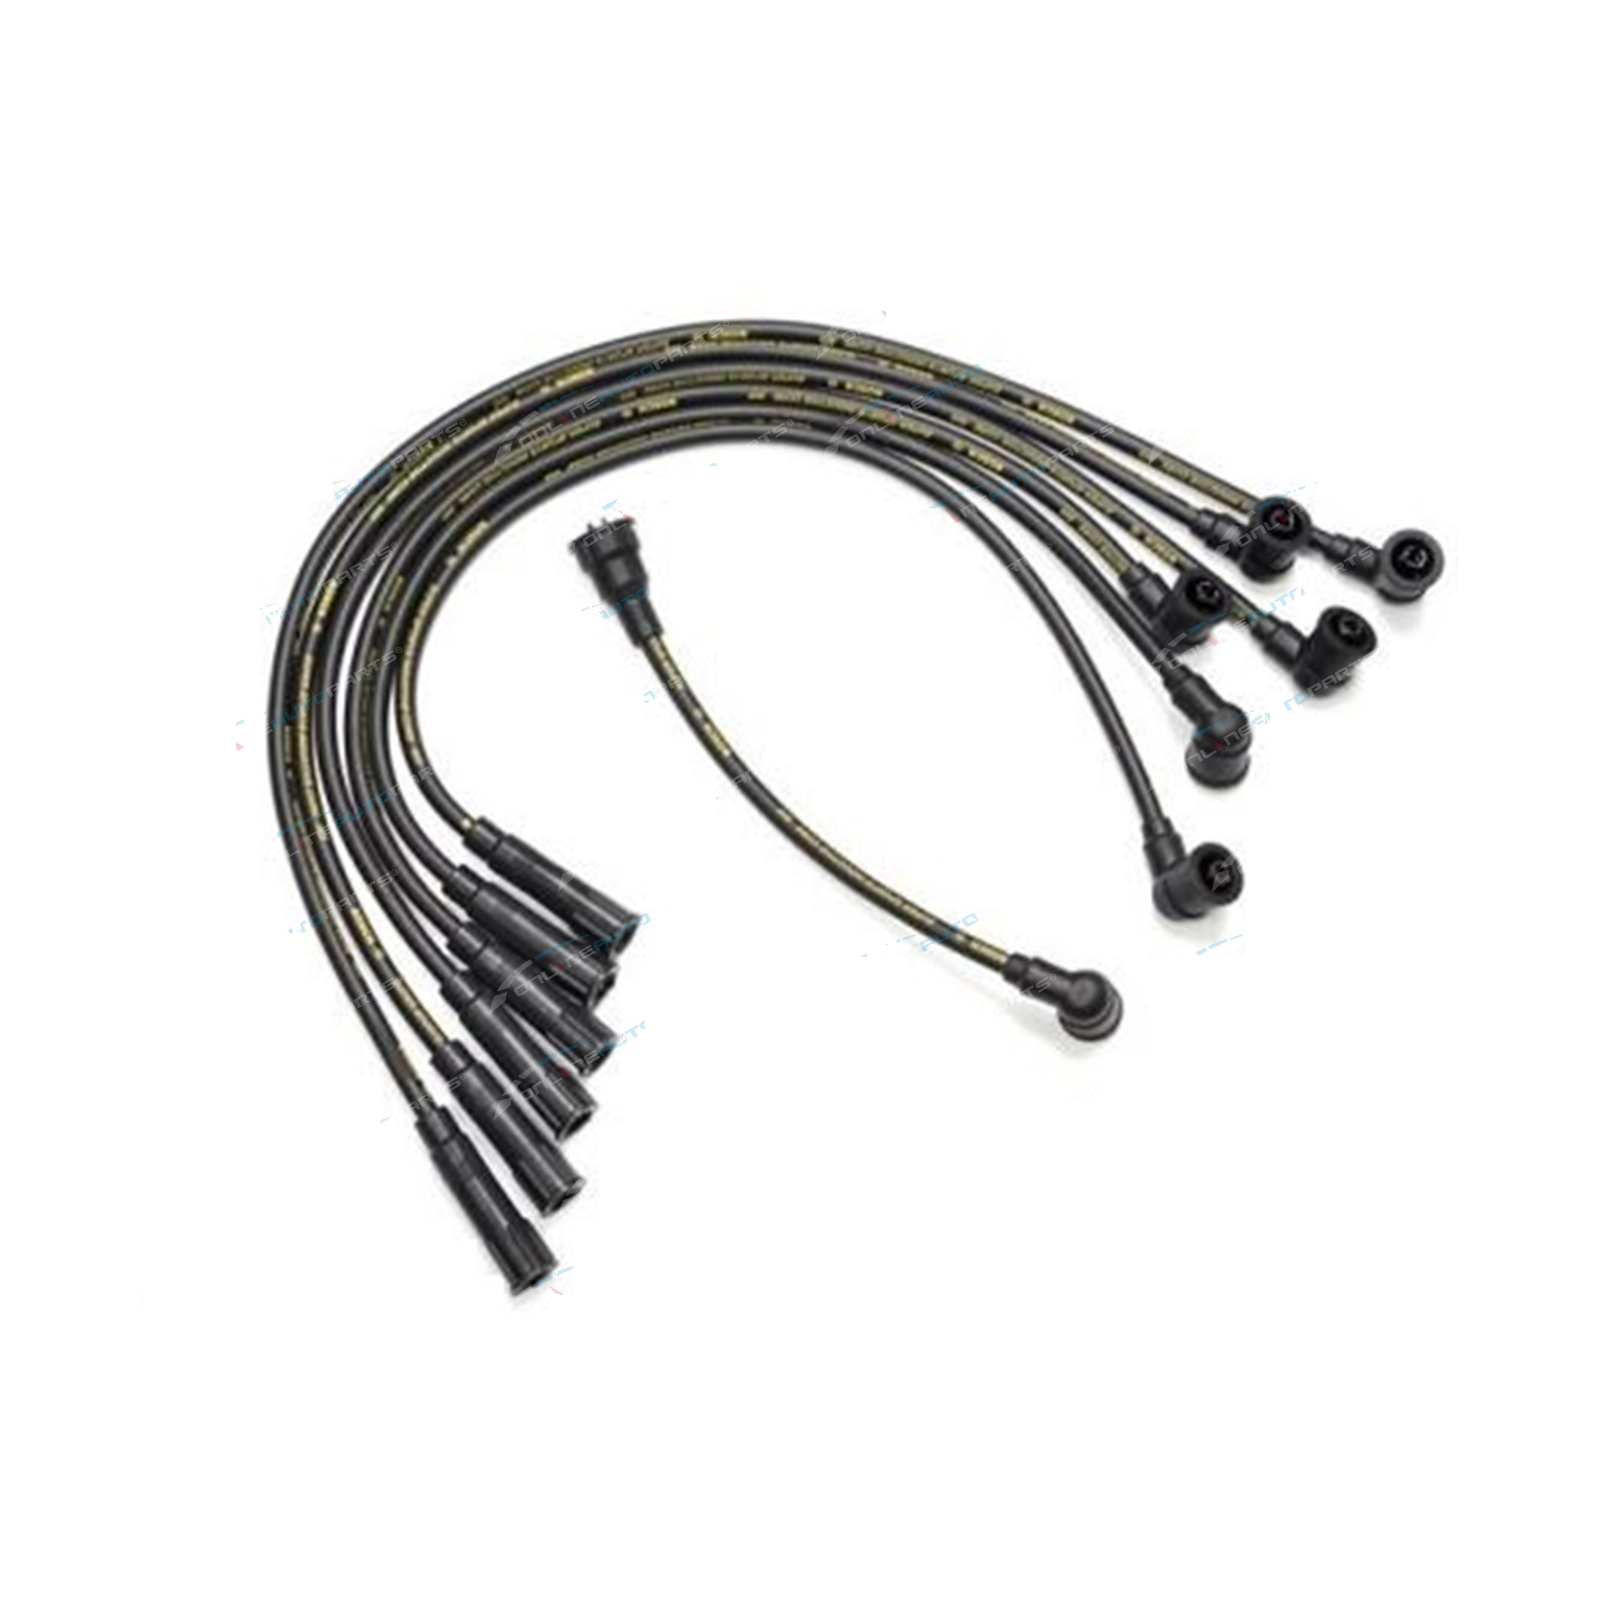 Bosch Ignition Spark Plug Lead Set Mitsubishi Pajero NF NG